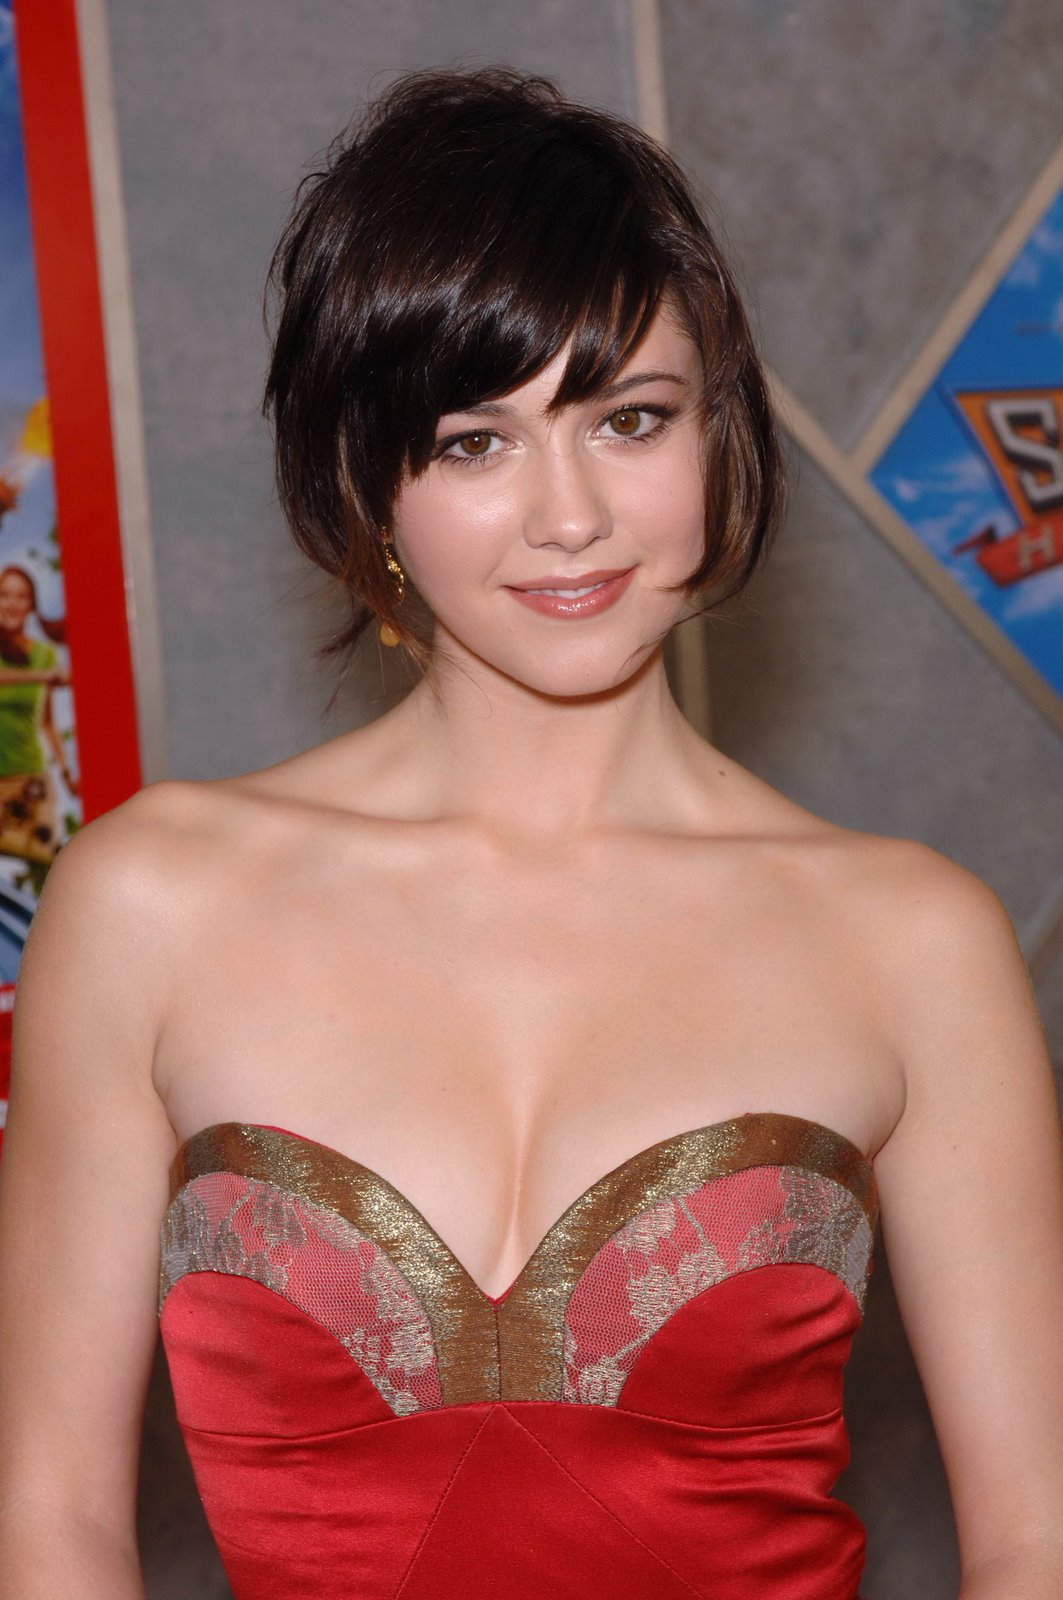 Mary Elizabeth Winstead image, Die Hard 4.0 Actress